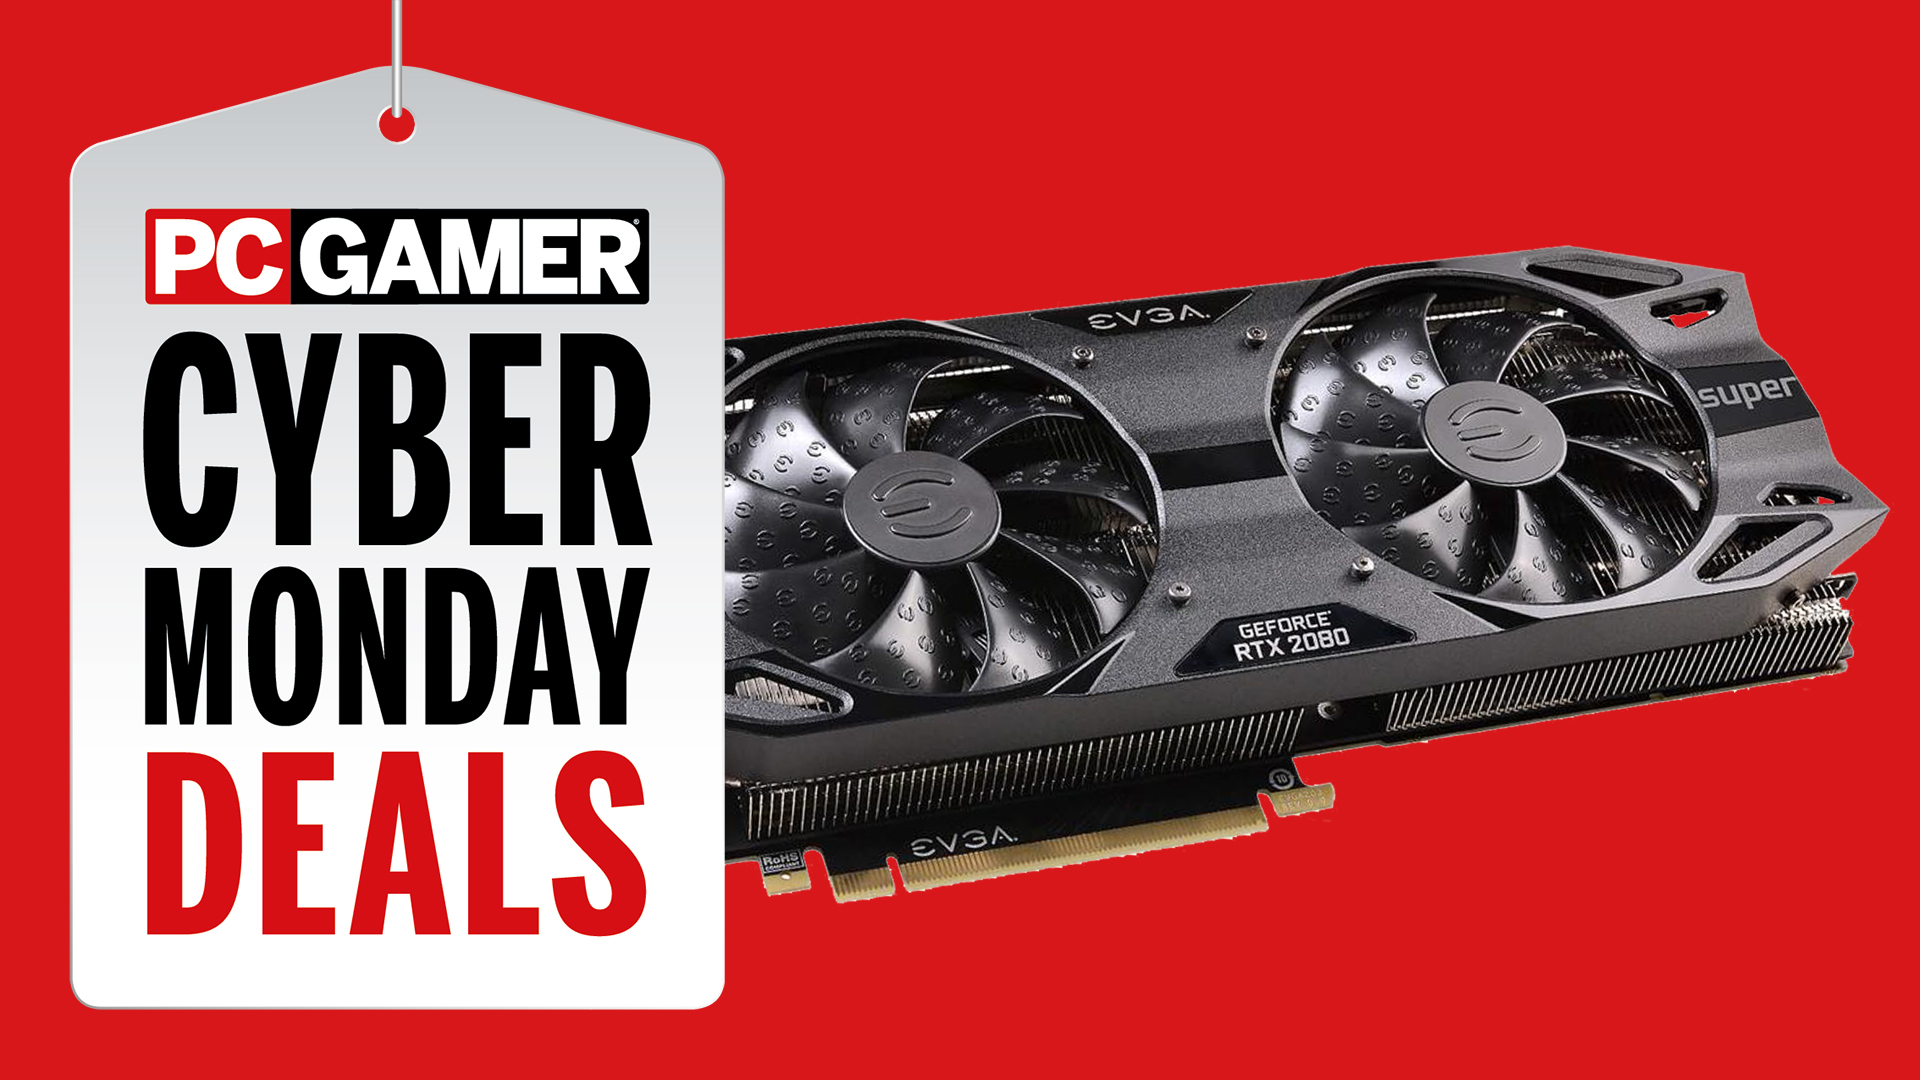 Cyber Monday graphics card deals 2019 | PC Gamer